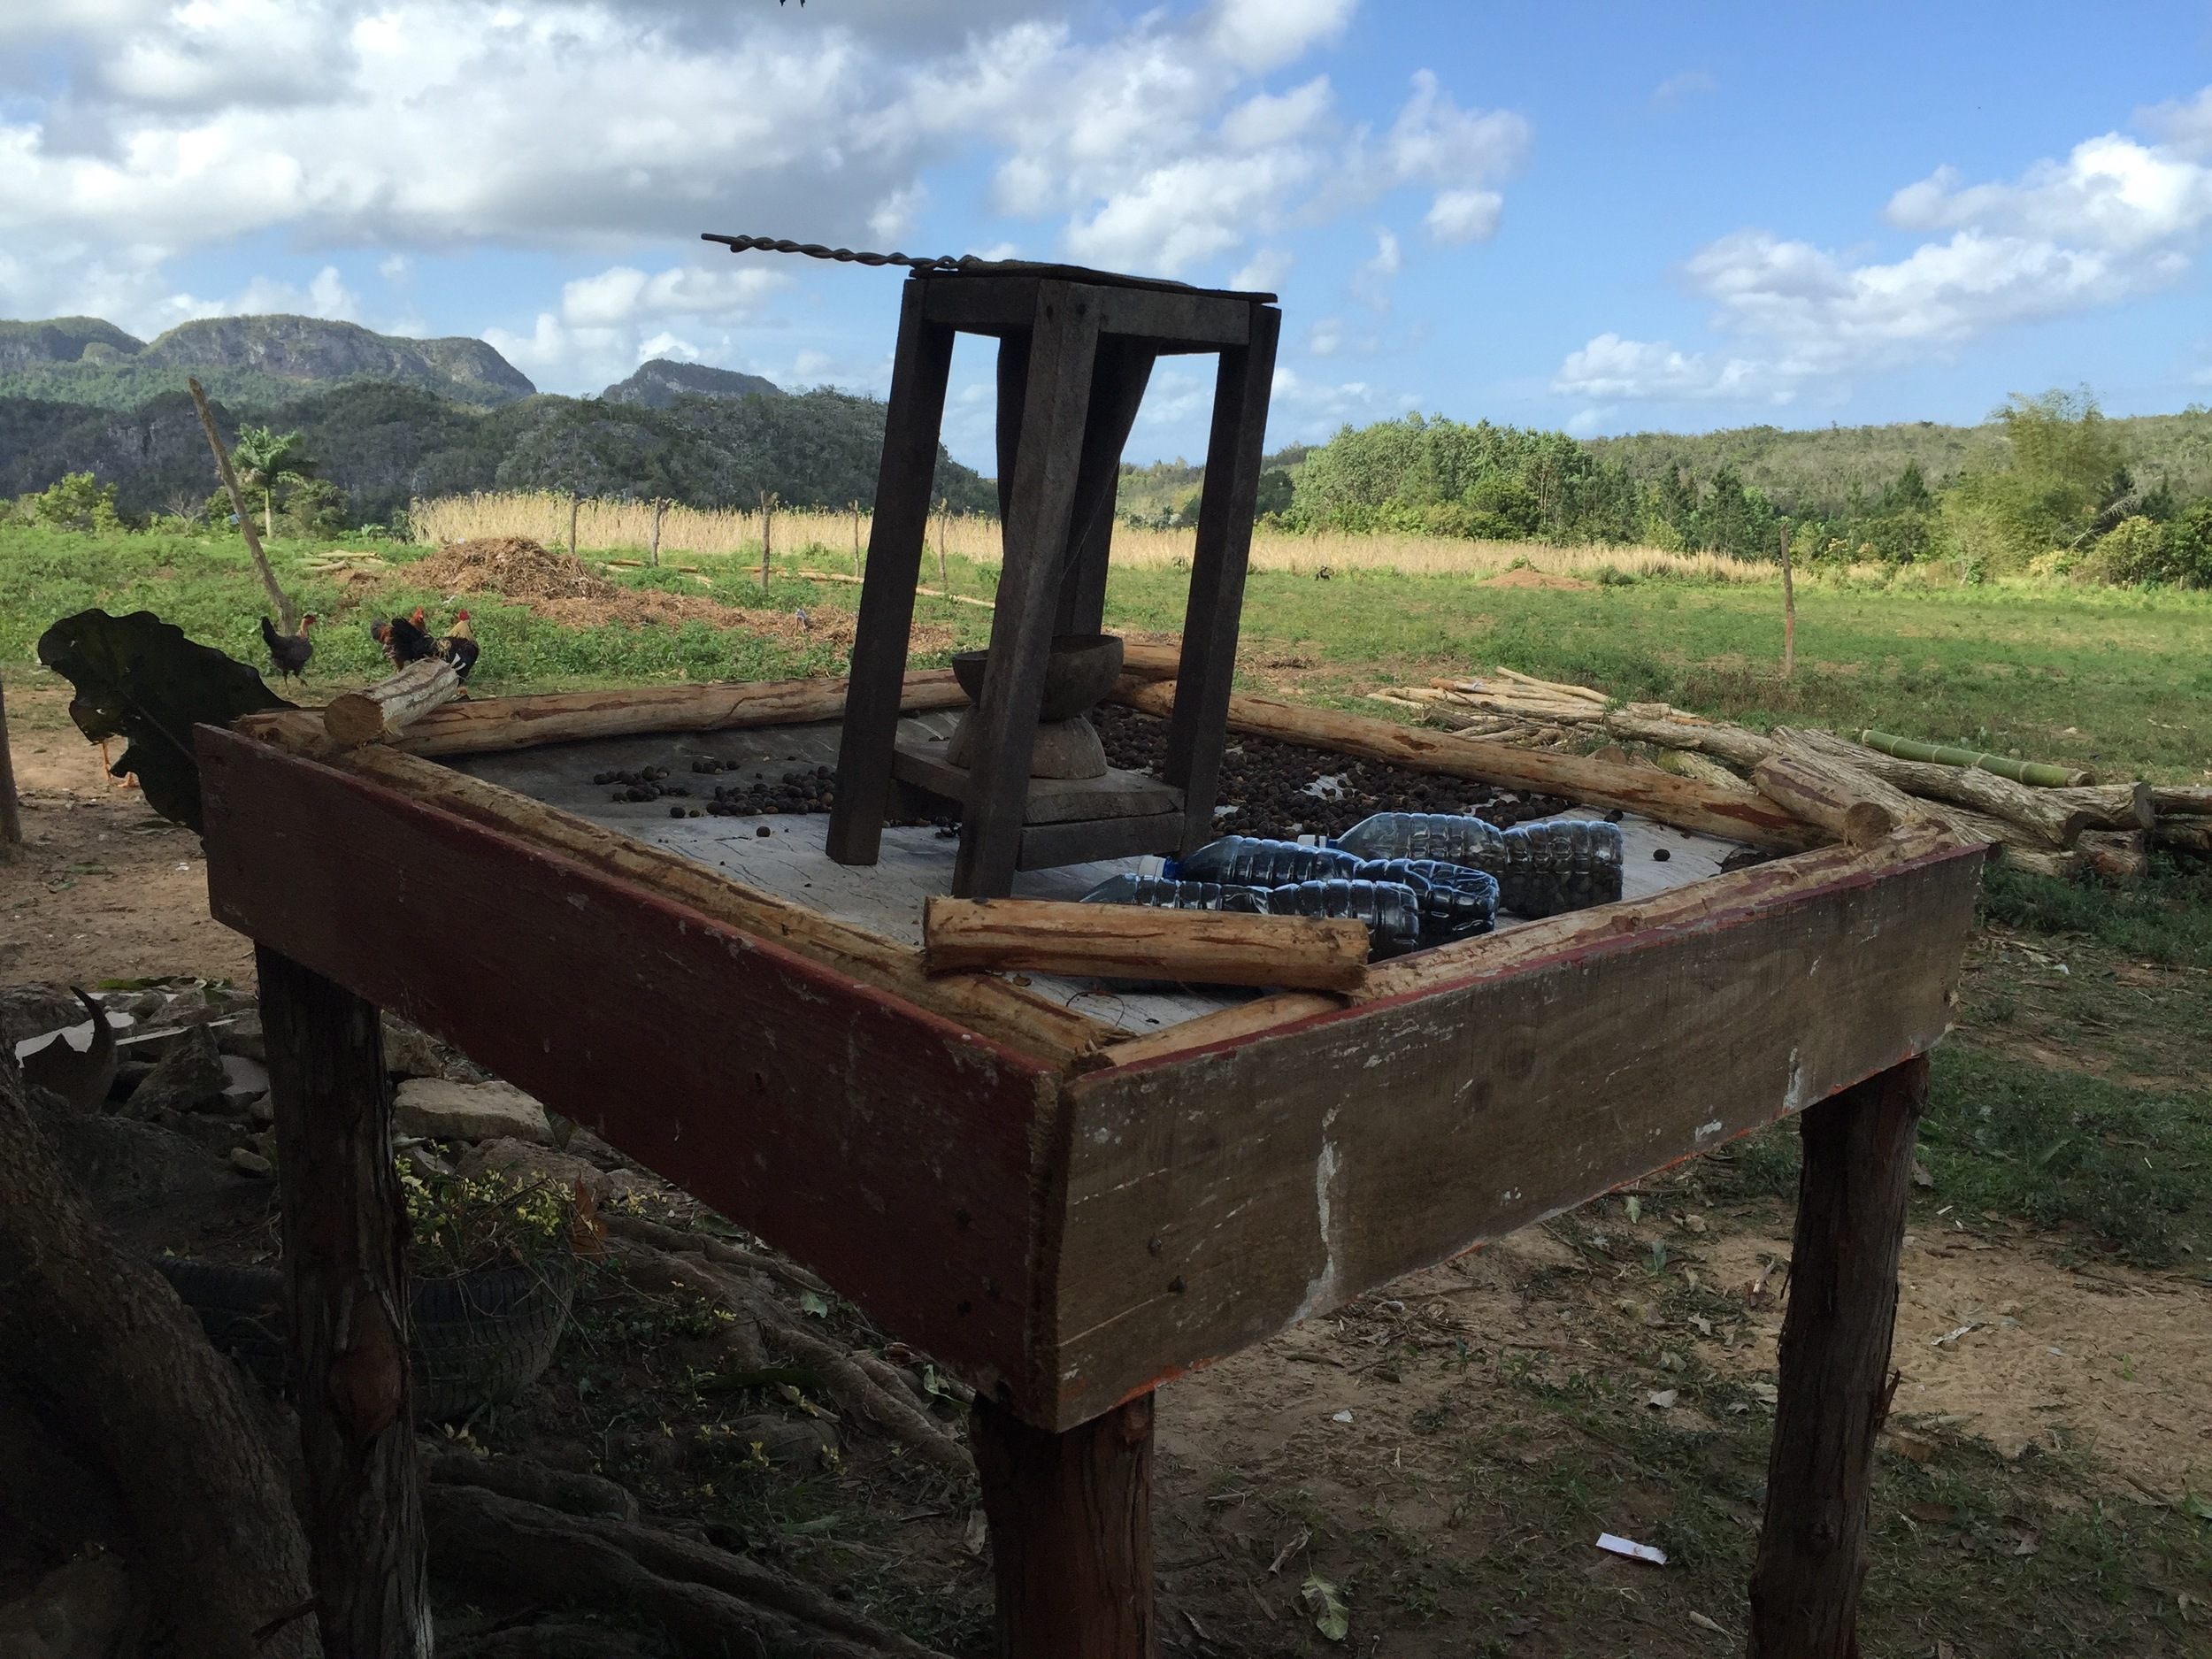 A cafetera (coffee pot) atop a drying stand on a Viñales coffee farm. Within a UNESCO World Heritage site, this farm is prohibited from using any machines or chemicals to grow and produce their coffee.